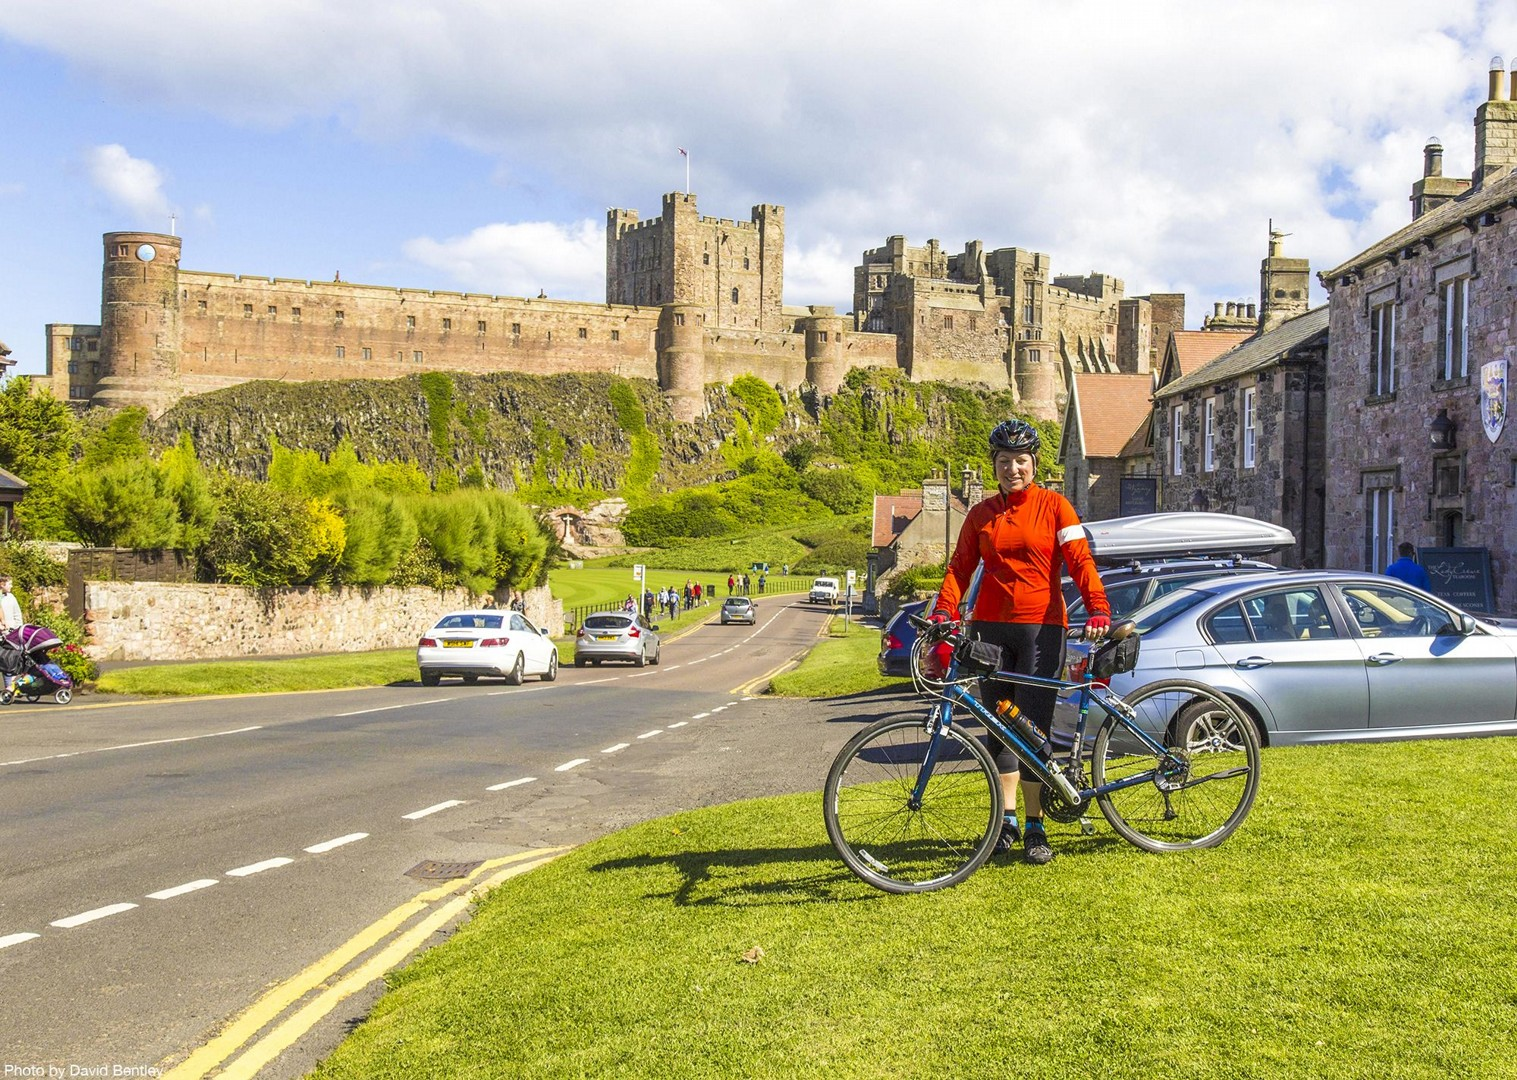 bamburgh-castle-cycling-tour-fun-culture-northumberland.jpg - UK - Northumberland Coast - 2 Days - Self-Guided Leisure Cycling Holiday - Leisure Cycling